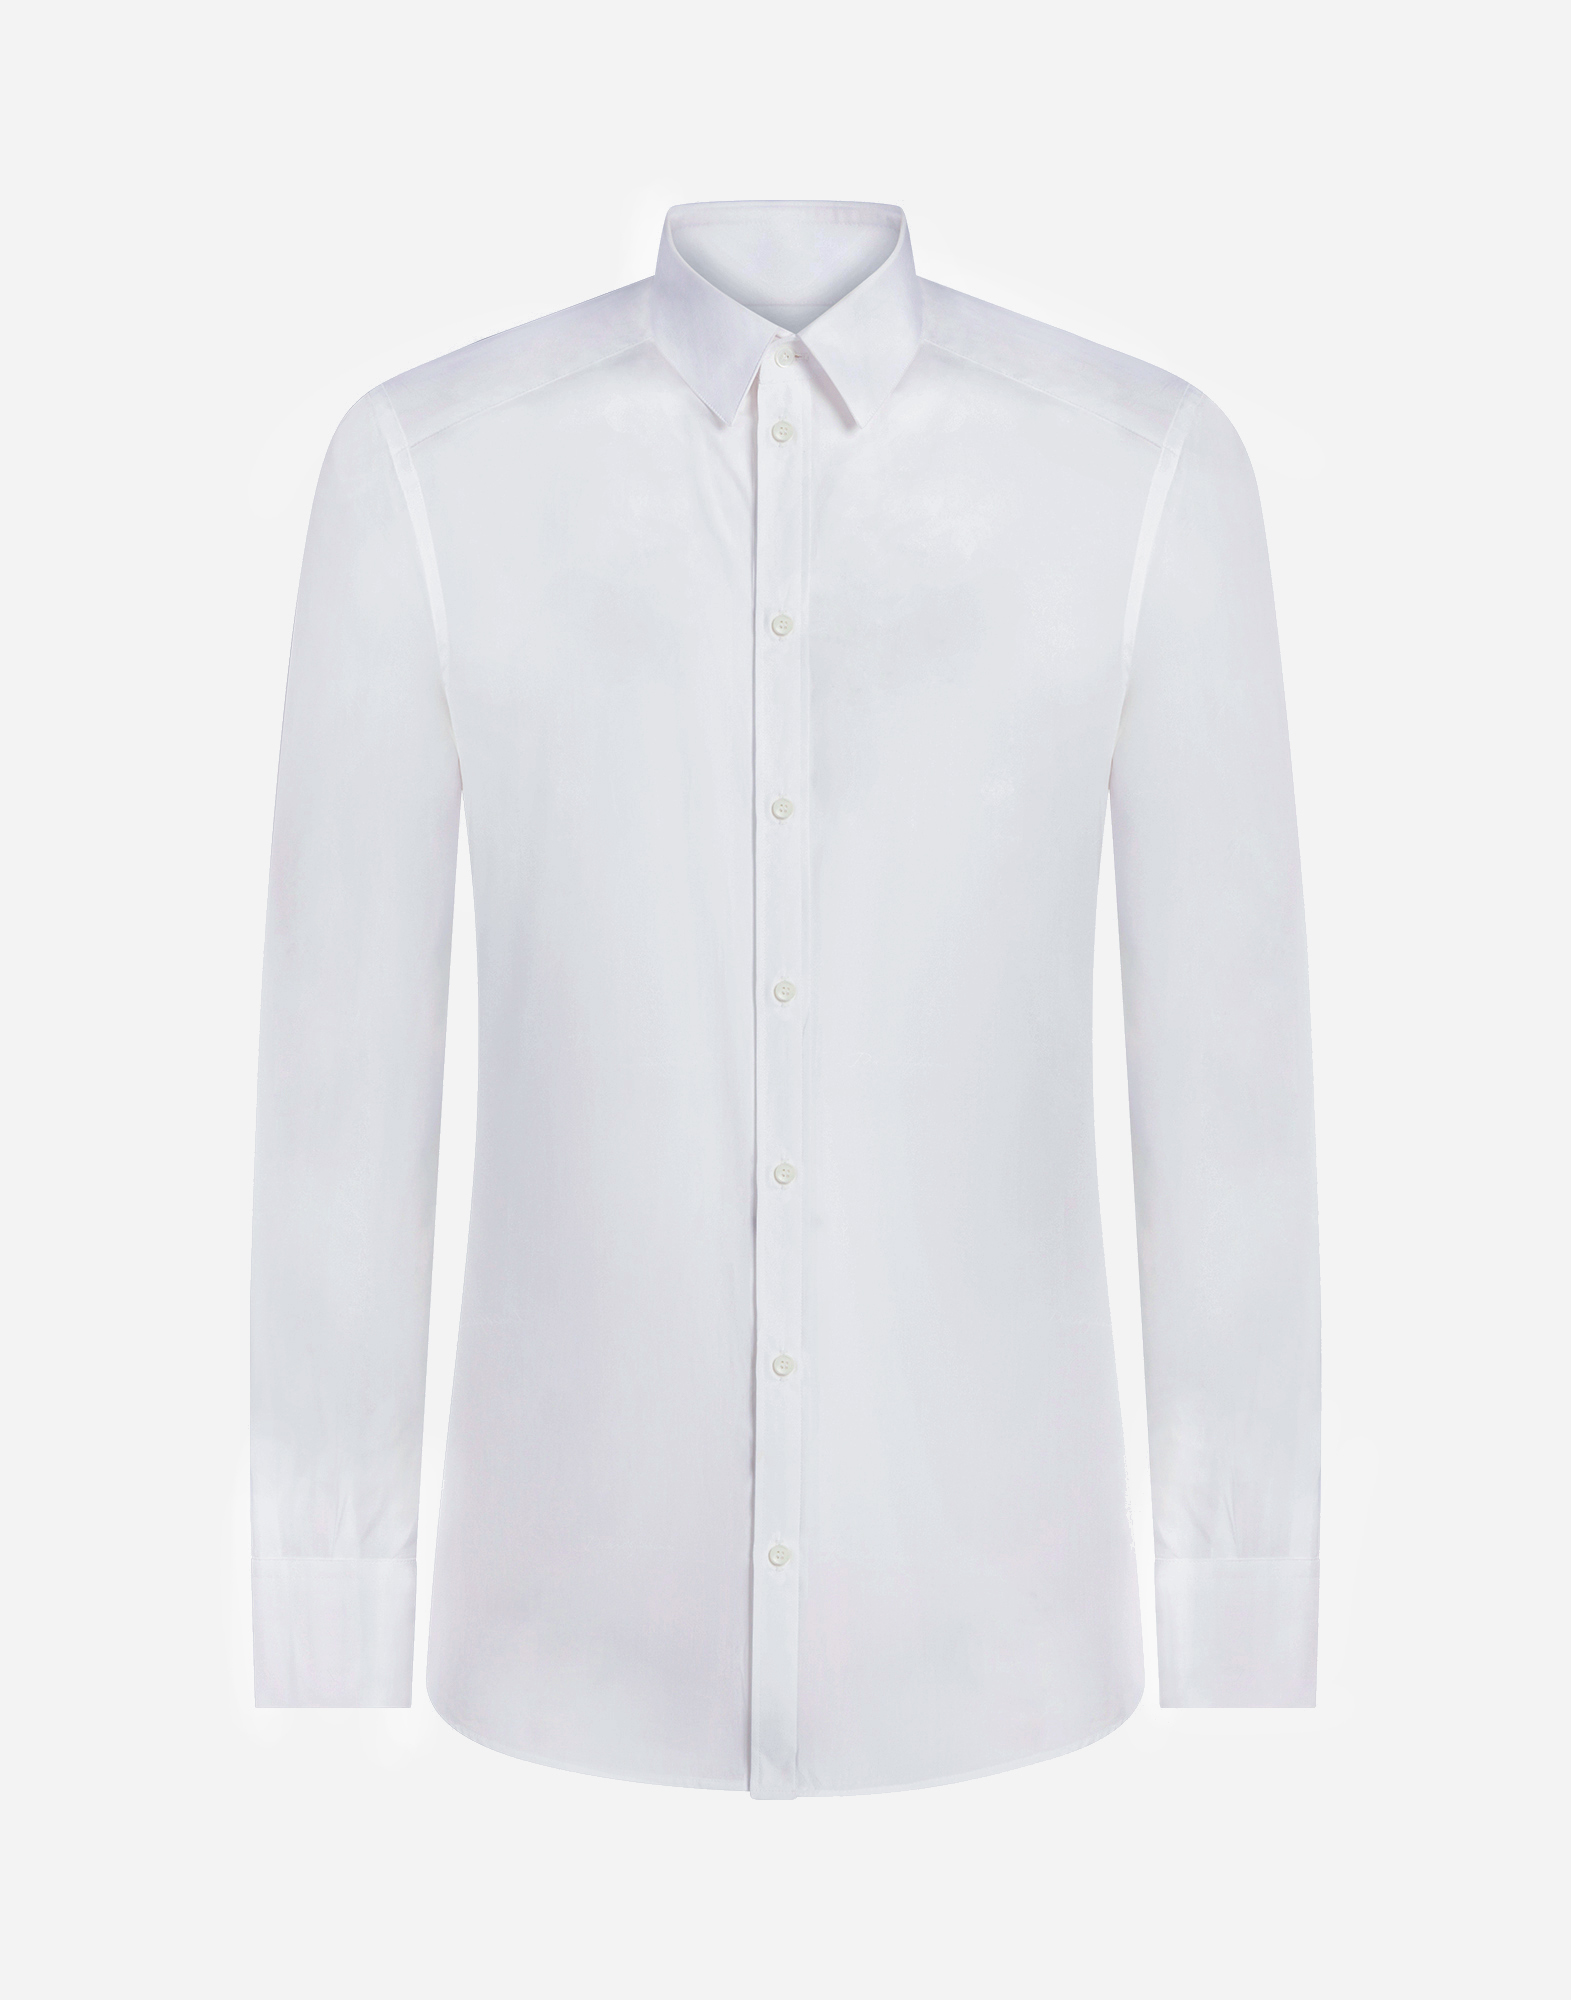 Dolce&Gabbana MARTINI FIT SHIRT IN JACQUARD COTTON